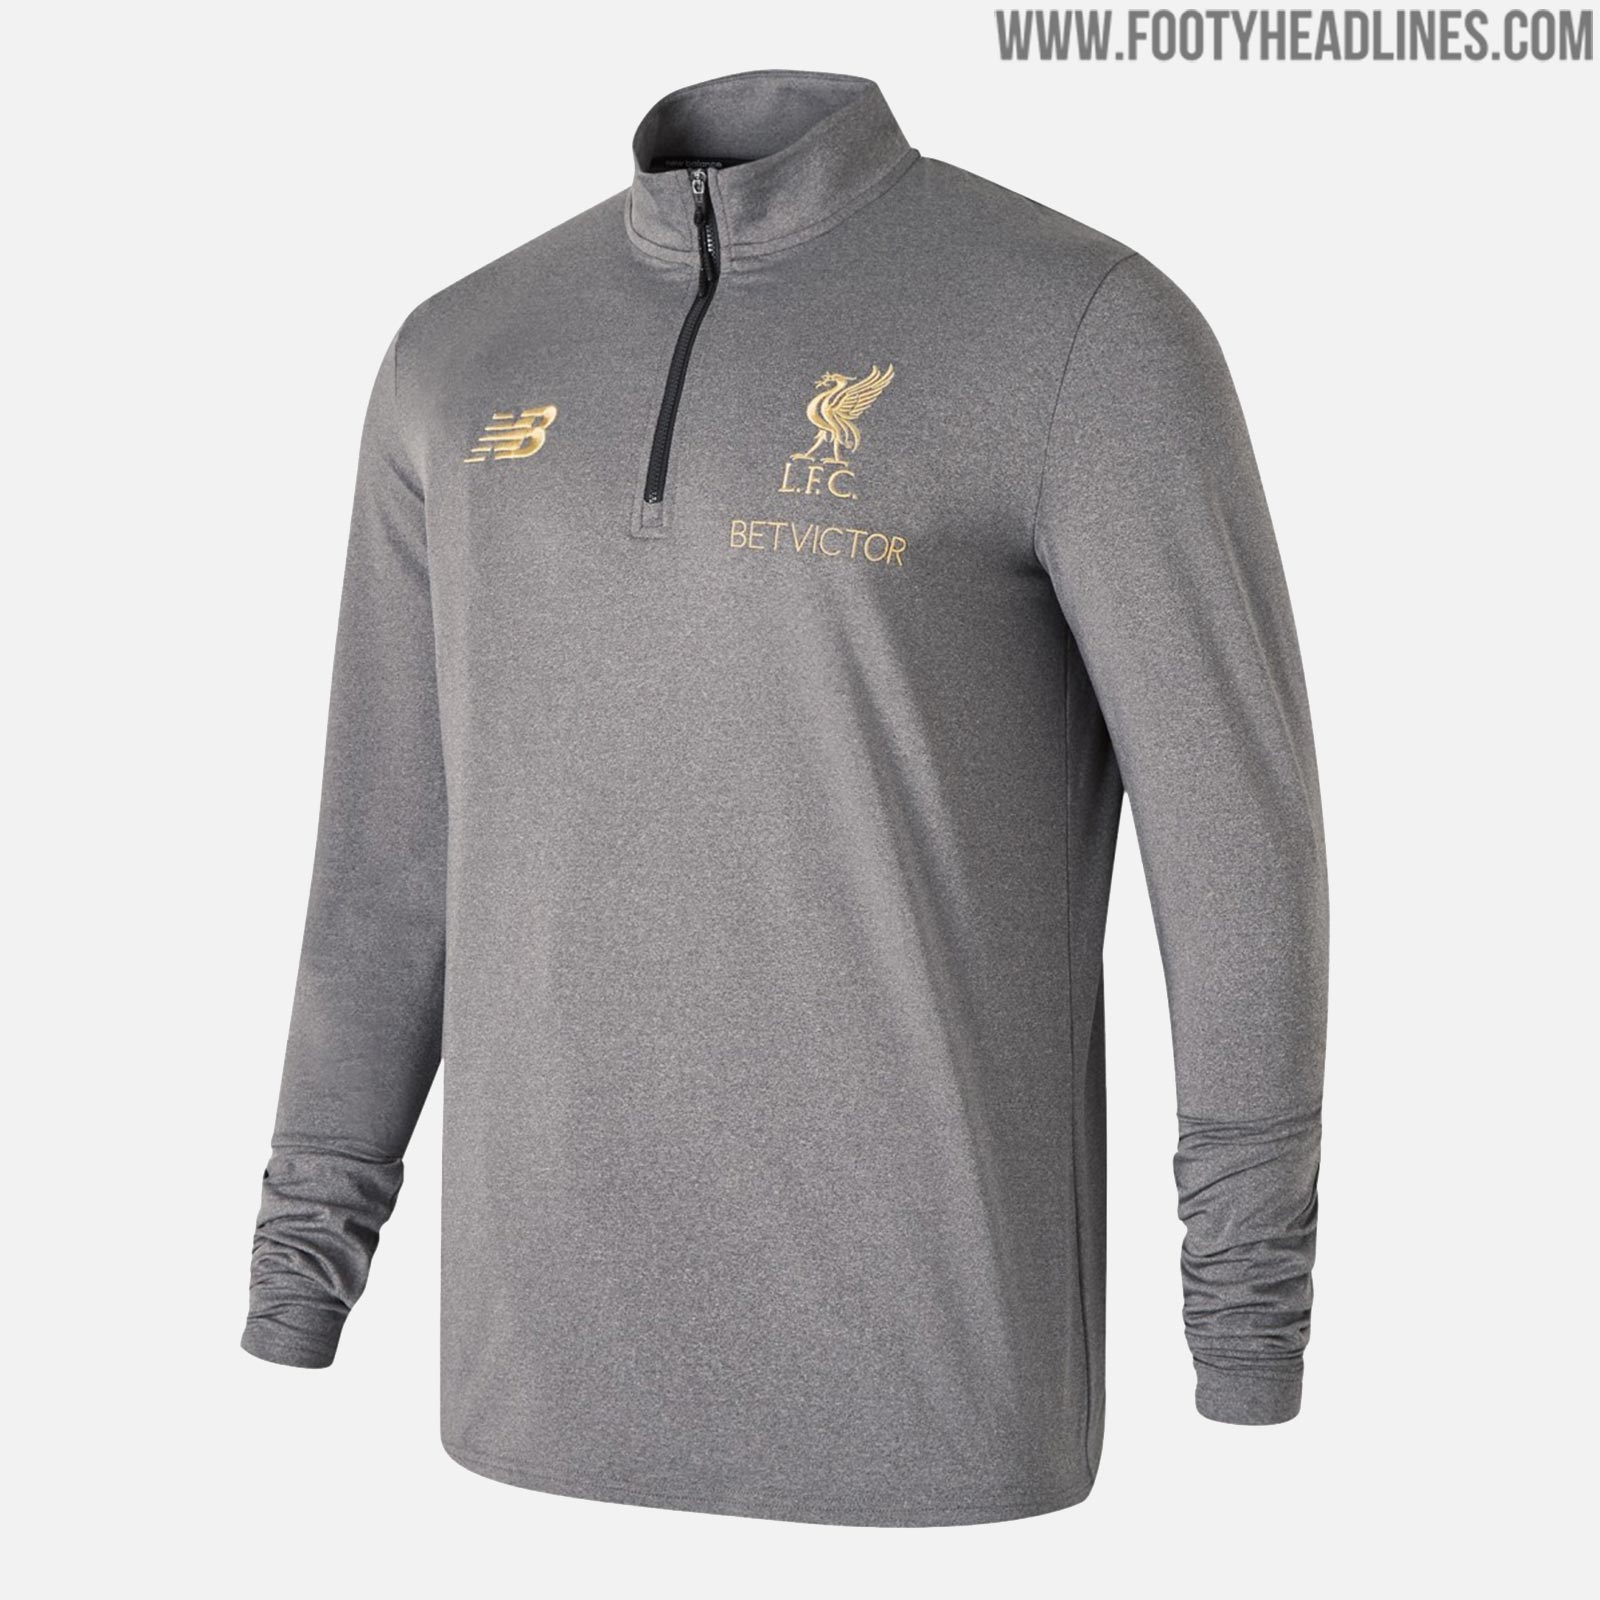 49081146bcf67 New Balance Liverpool Jürgen Klopp Manager Collection Released ...